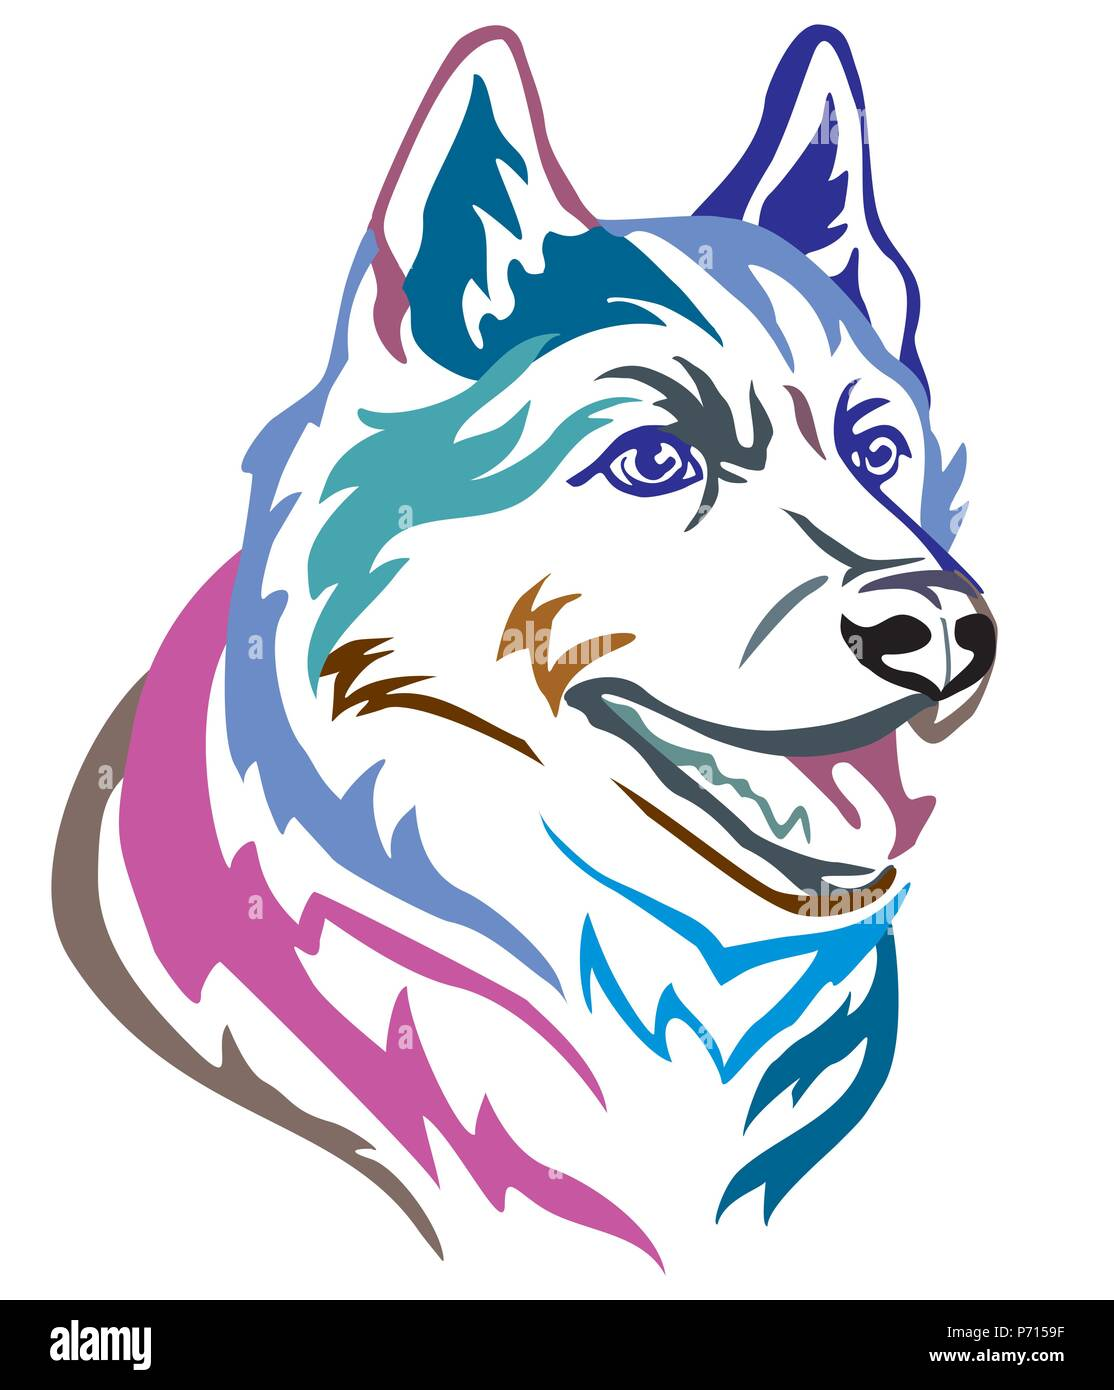 Colorful decorative portrait in profile of Dog Siberian Husky, vector illustration in different colors isolated on white background. Image for design  - Stock Vector